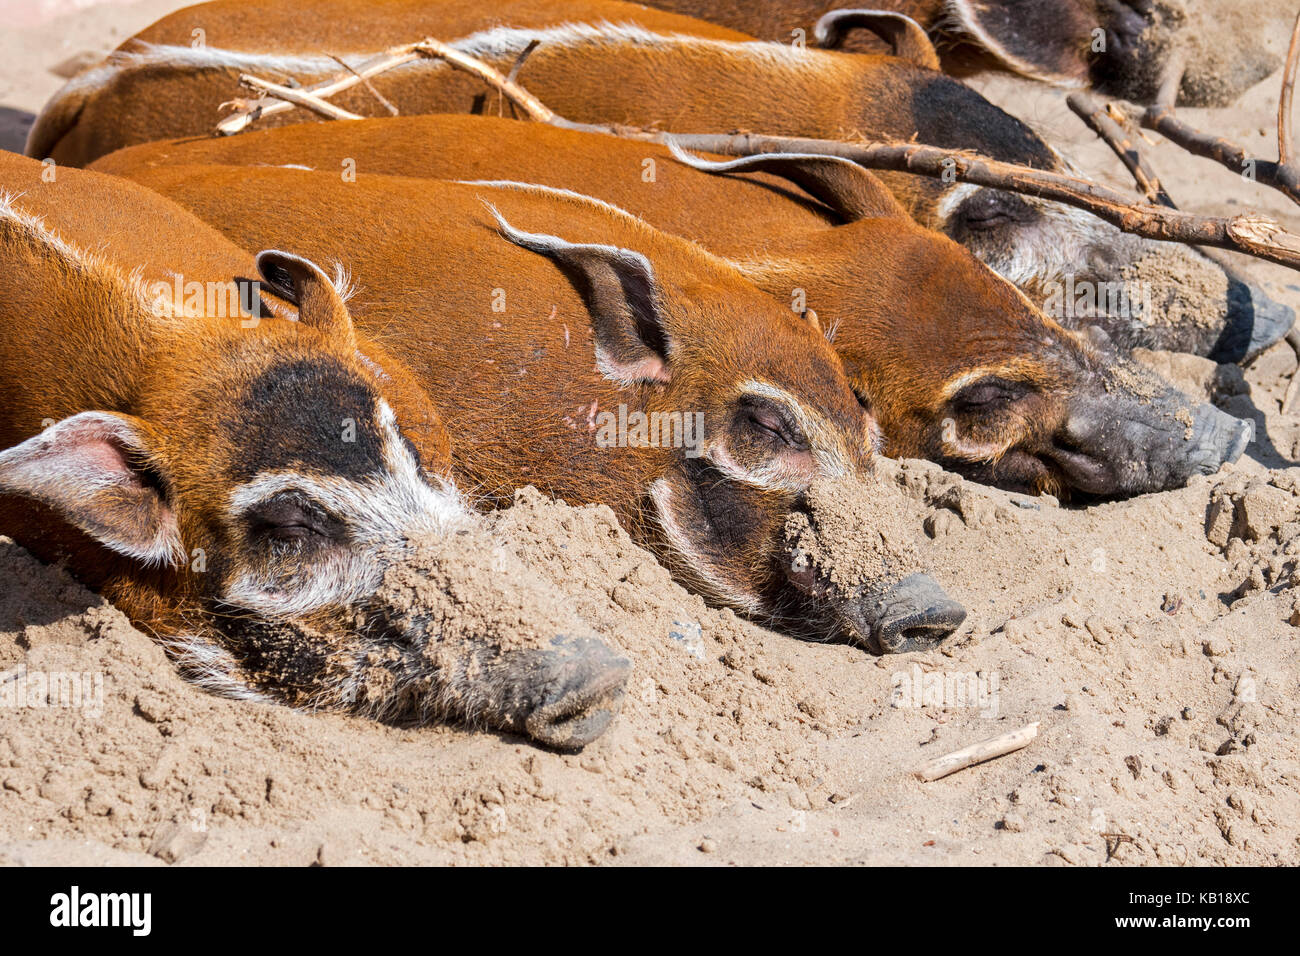 Close up of red river hogs / bush pigs (Potamochoerus porcus) sleeping, native to Africa - Stock Image